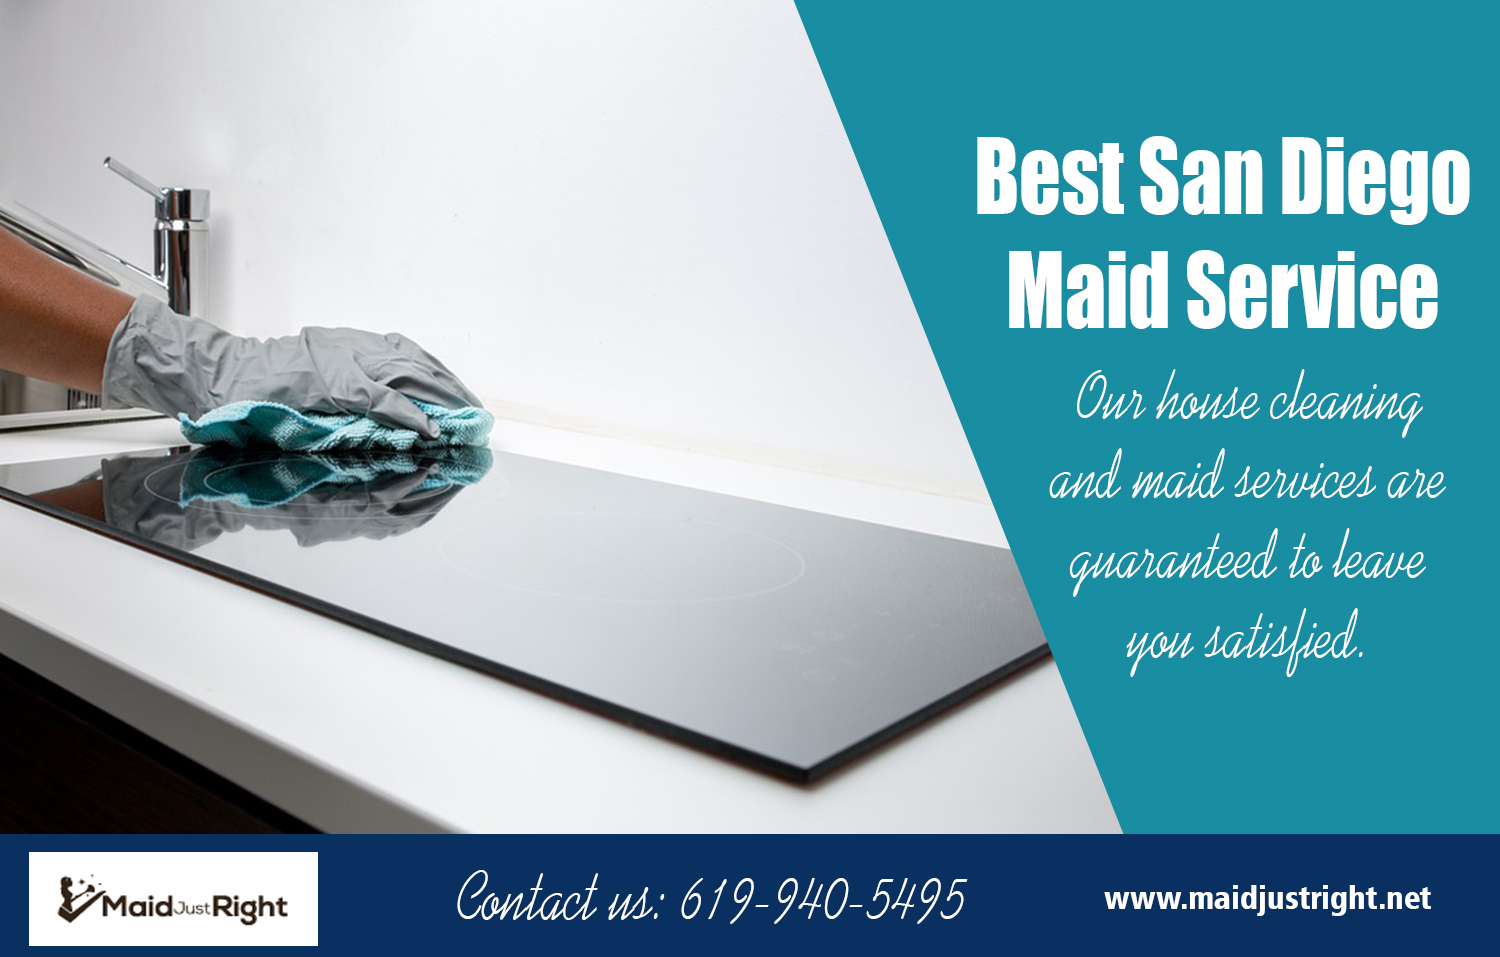 Best San Diego Maid Service | Call Us - 619-940-5495 | maidjustright.net